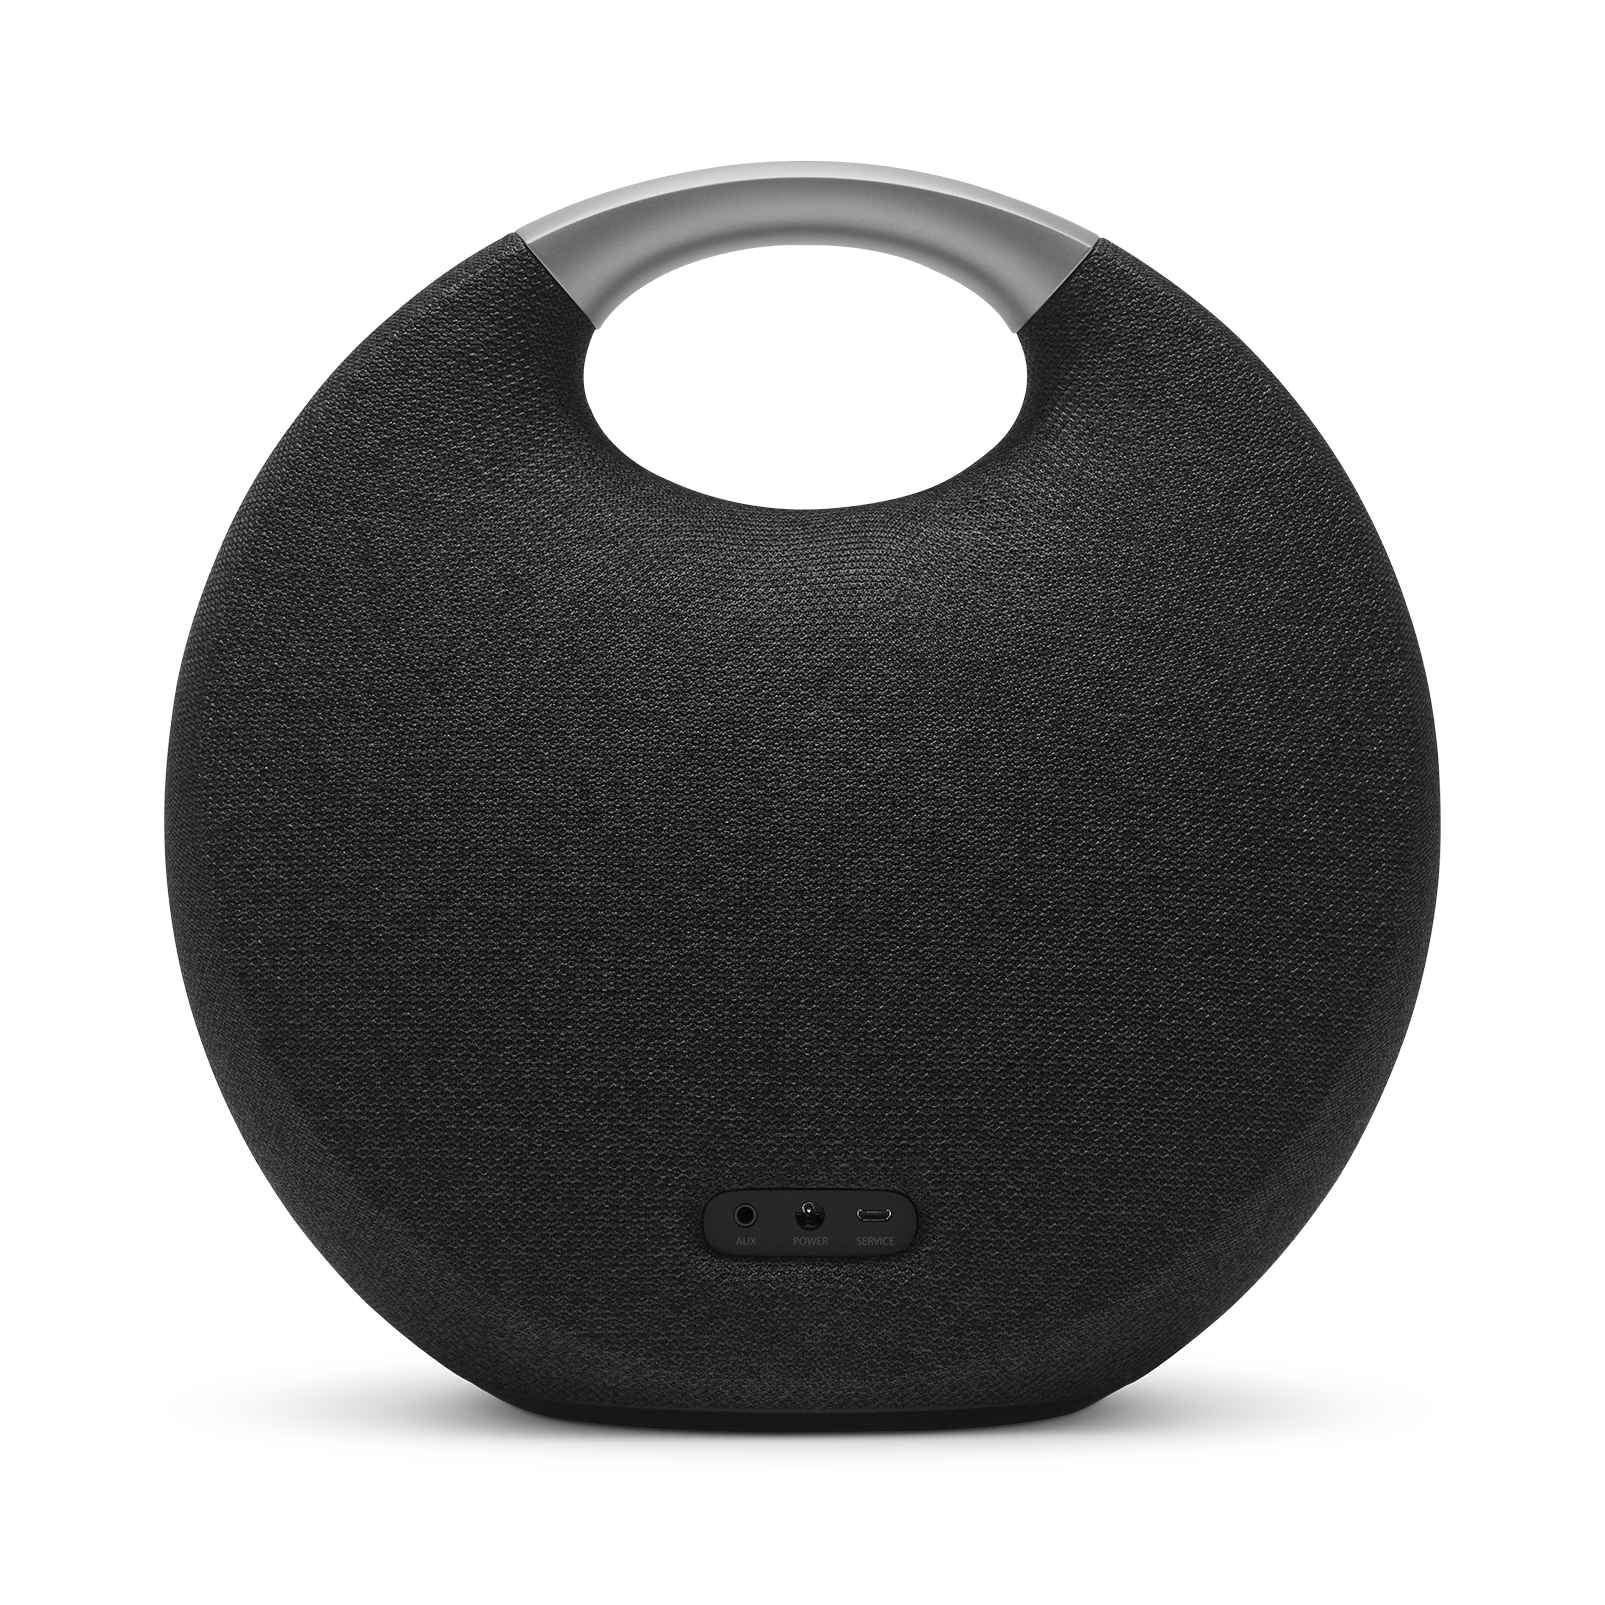 Onyx Studio 5 - Black - Portable Bluetooth Speaker - Back